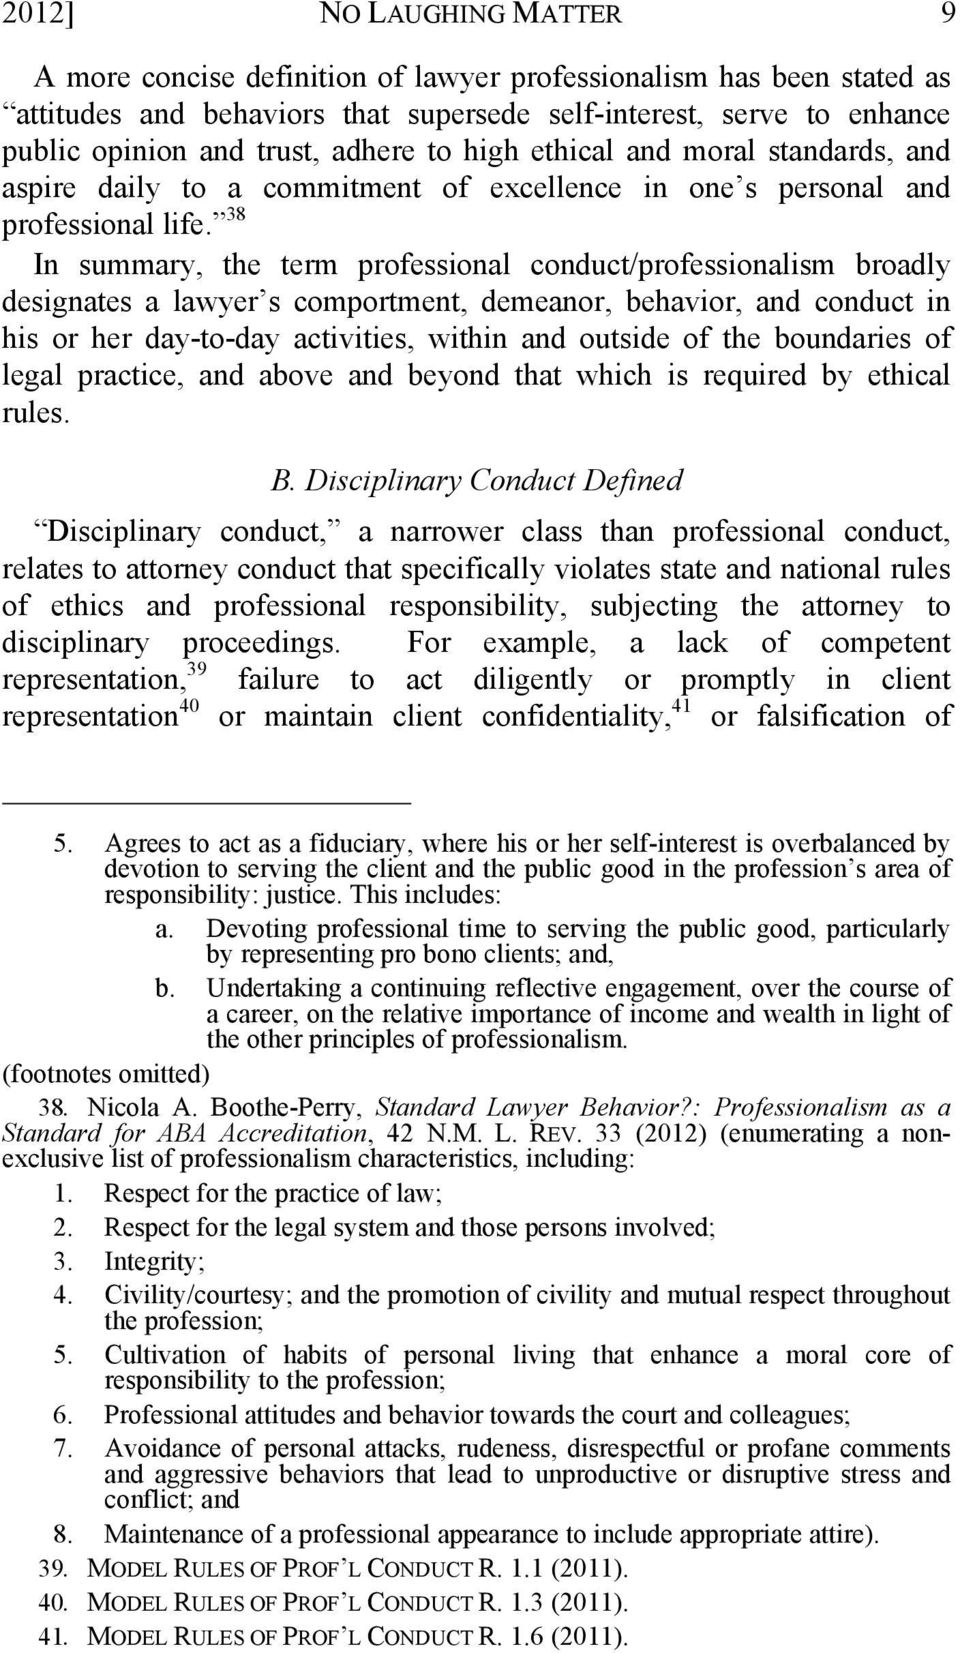 38 In summary, the term professional conduct/professionalism broadly designates a lawyer s comportment, demeanor, behavior, and conduct in his or her day-to-day activities, within and outside of the